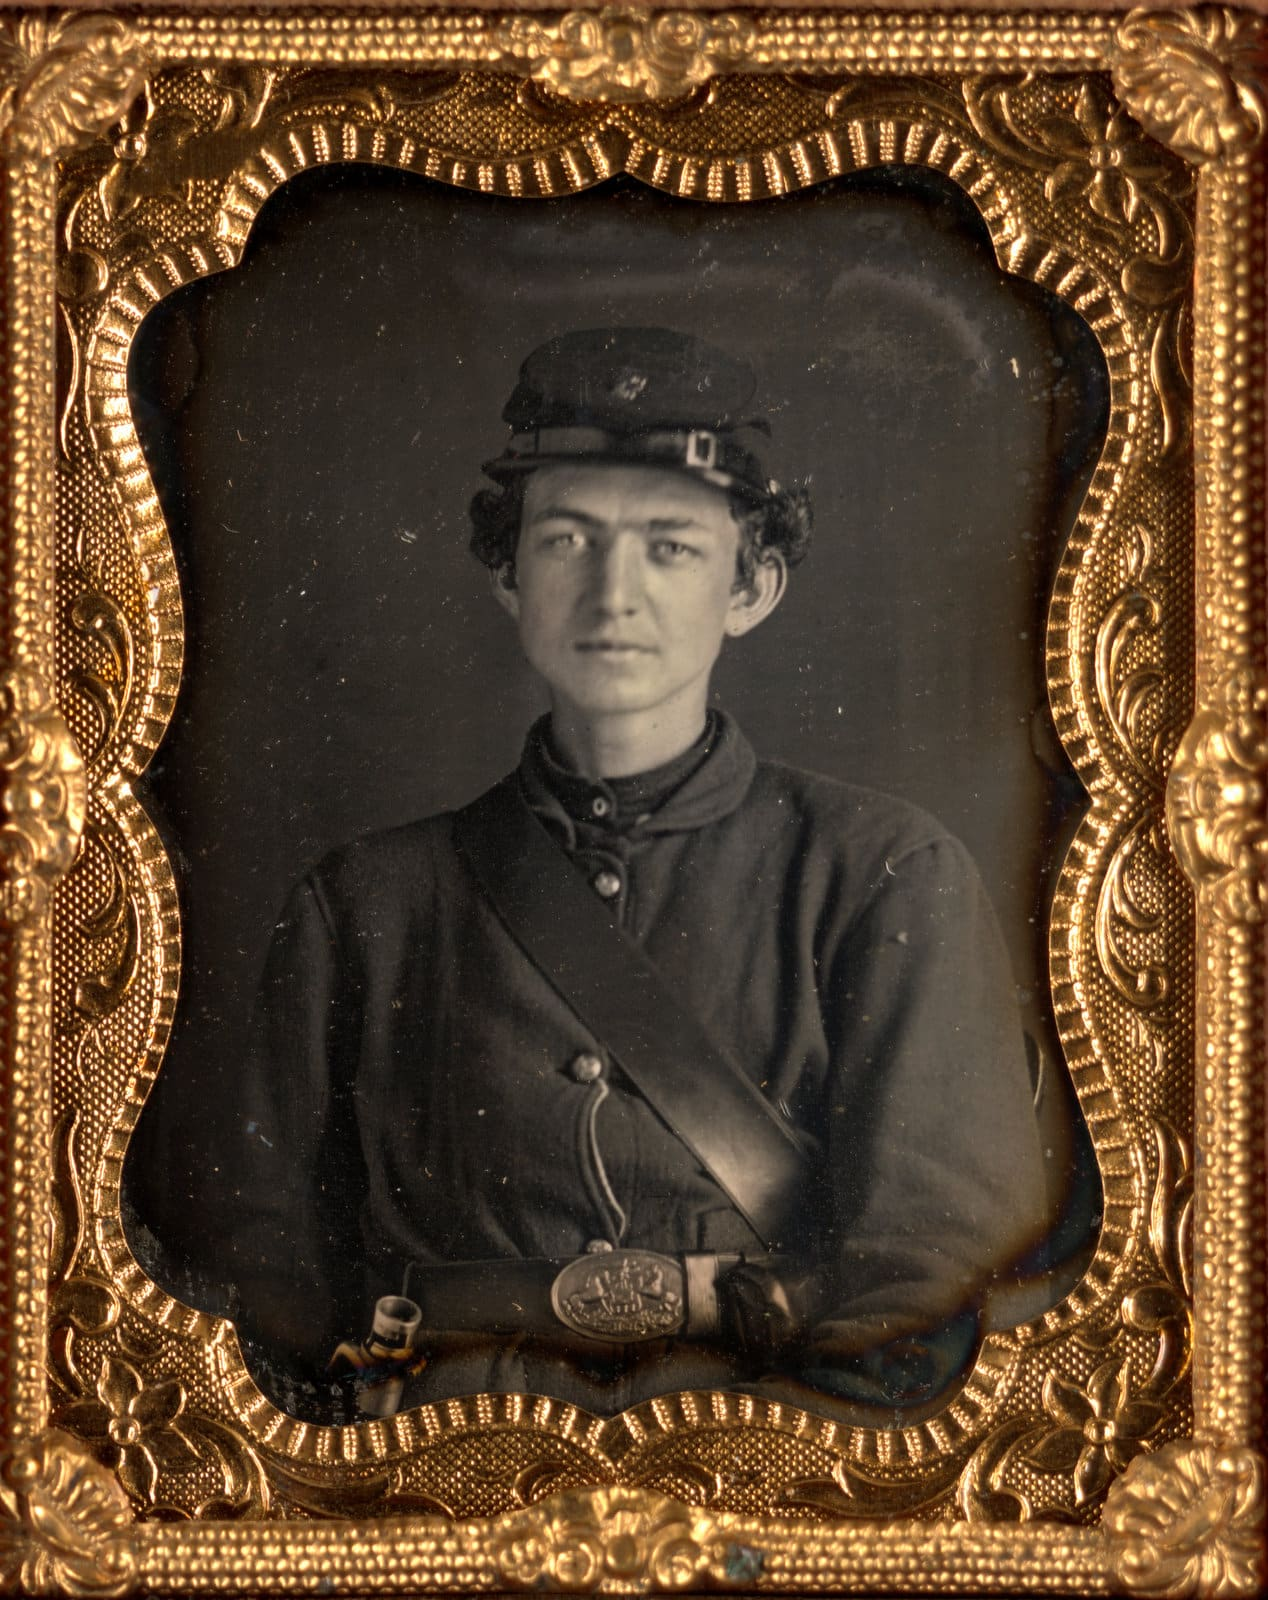 Unidentified young soldier during the Civil War